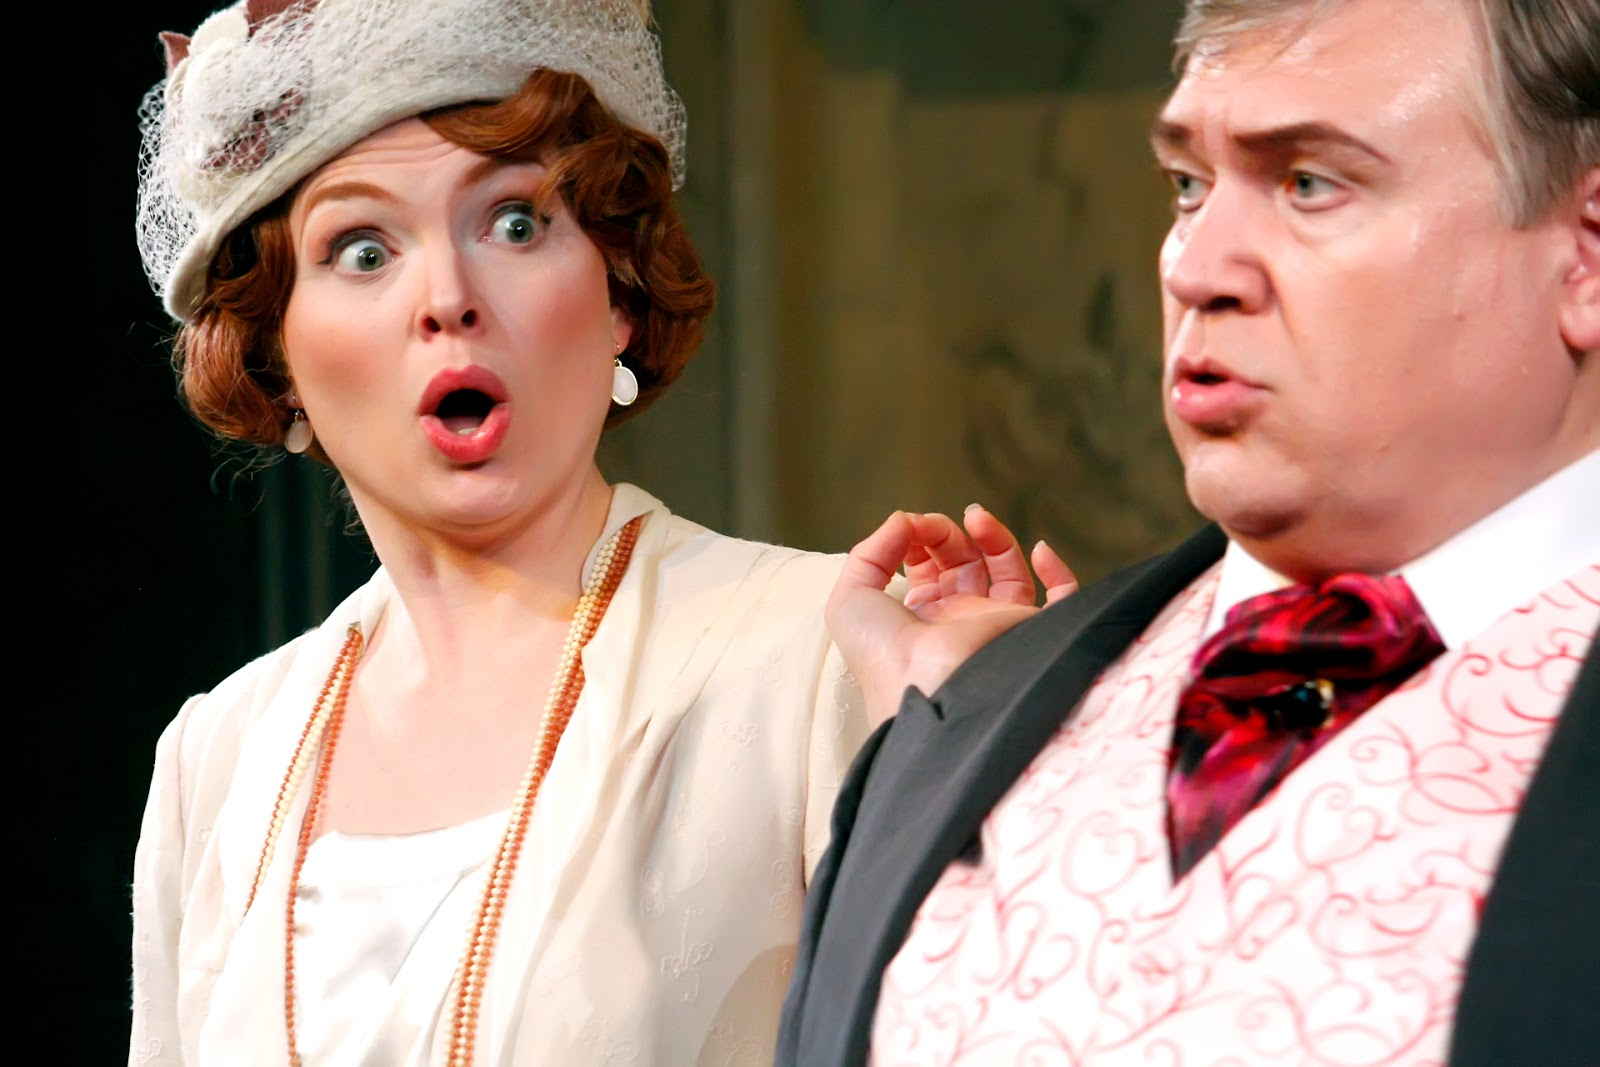 IN PERFORMANCE: Soprano ARIANA WYATT as Norina (left) and baritone STEVEN CONDY in the title rôle (right) in the Opera on the James production of Gaetano Donizetti's DON PASQUALE, April 2016 [Photo © by KG Thienemann/ImageArtWork.com]